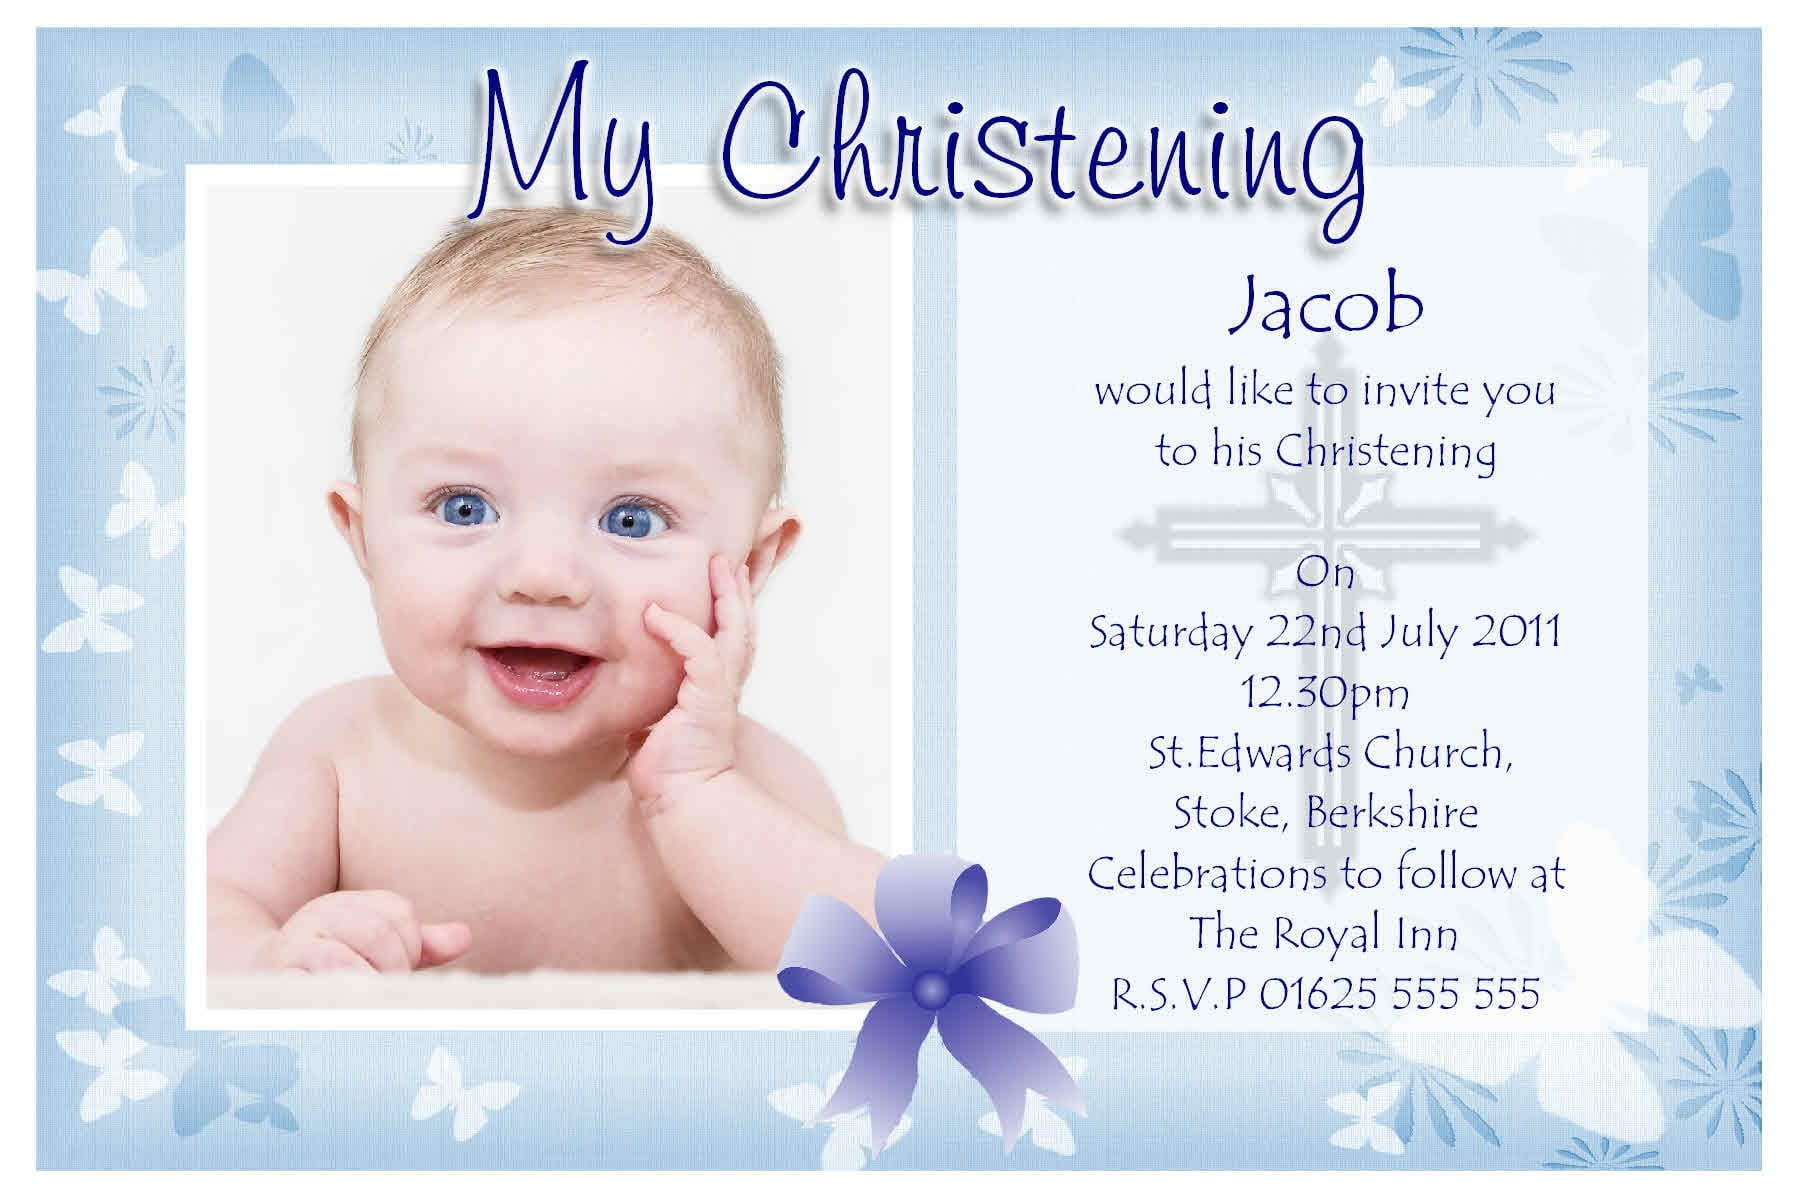 Baptism Invitations For Boy is one of our best ideas you might choose for invitation design